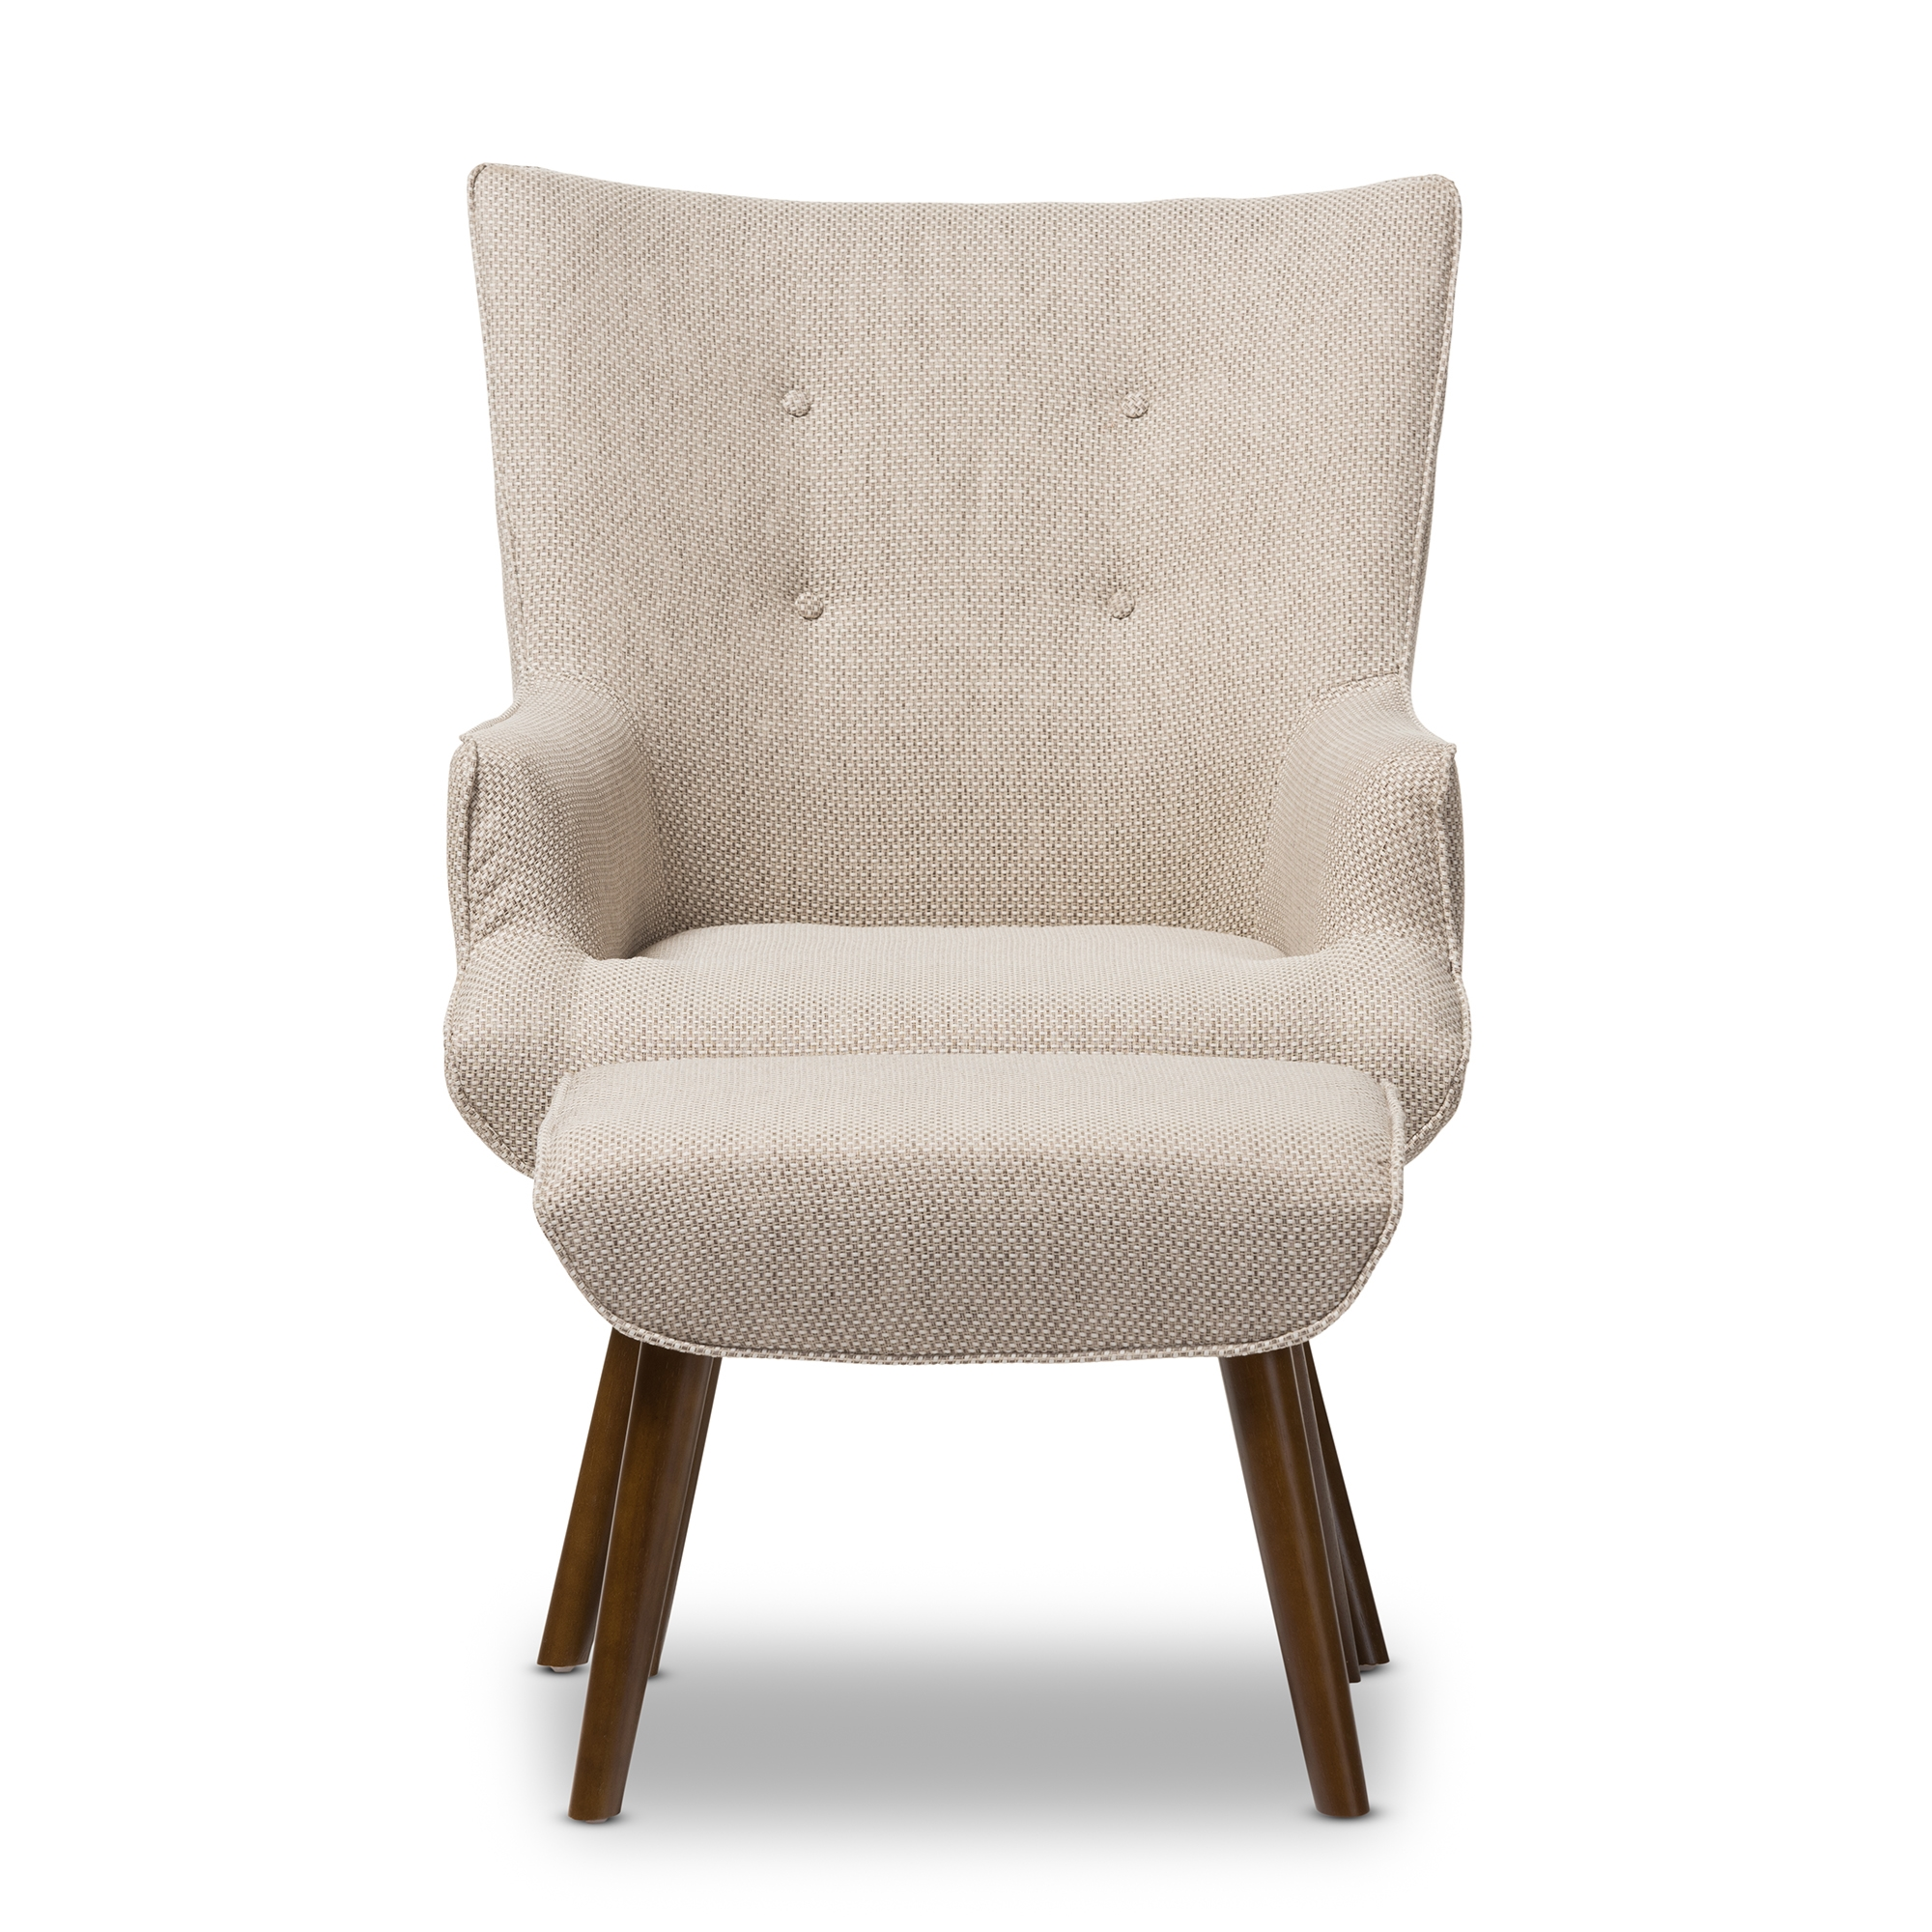 ... Baxton Studio Nola Mid Century Inspired Beige Fabric Upholstered Occasional  Armchair And Ottoman Set ...